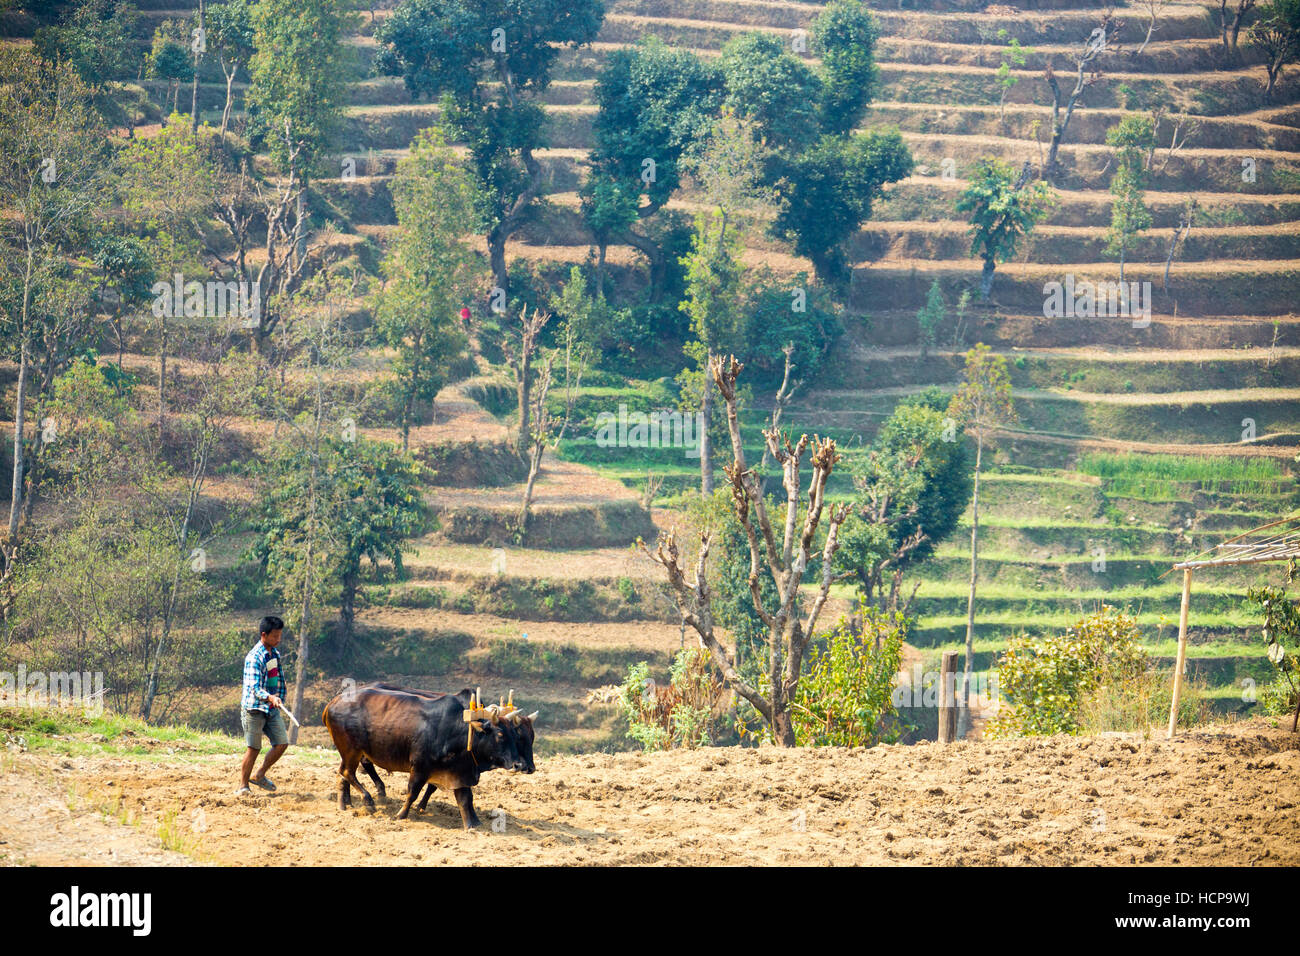 Plowing in Sindhulpalchok District, Nepal - Stock Image